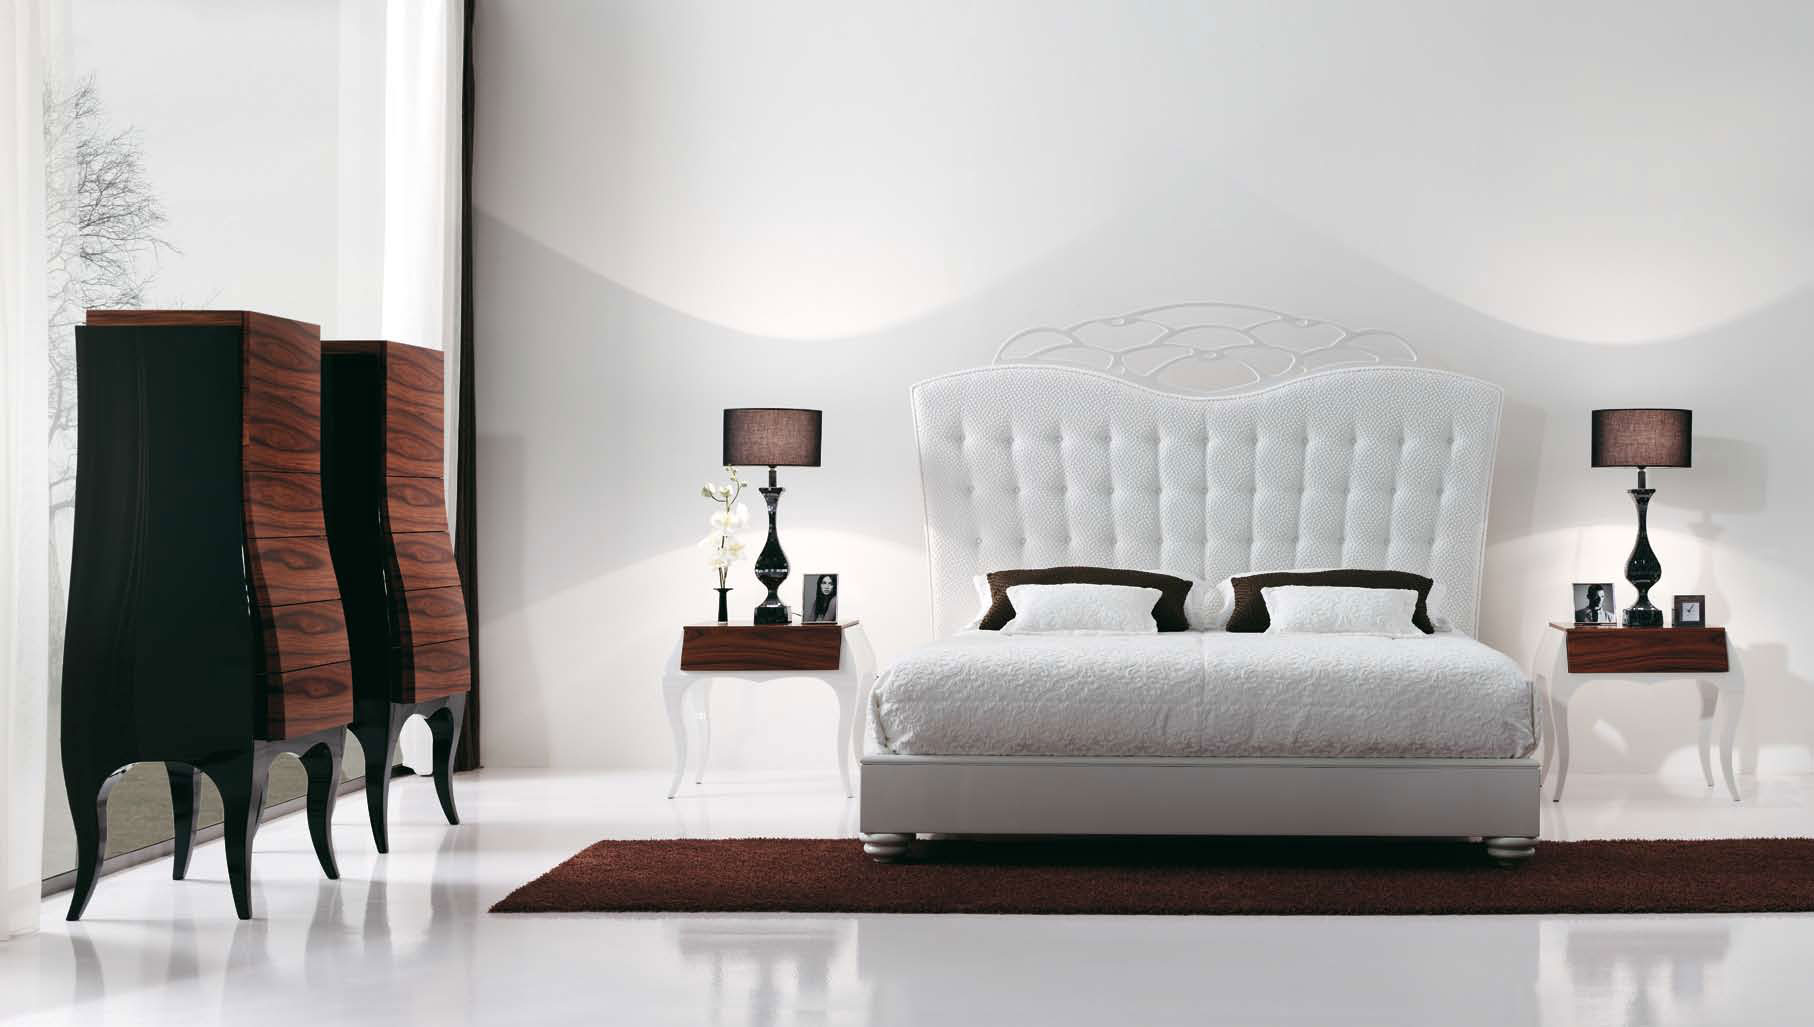 Brilliant Beautiful White Bedroom Designs 1814 x 1027 · 118 kB · jpeg